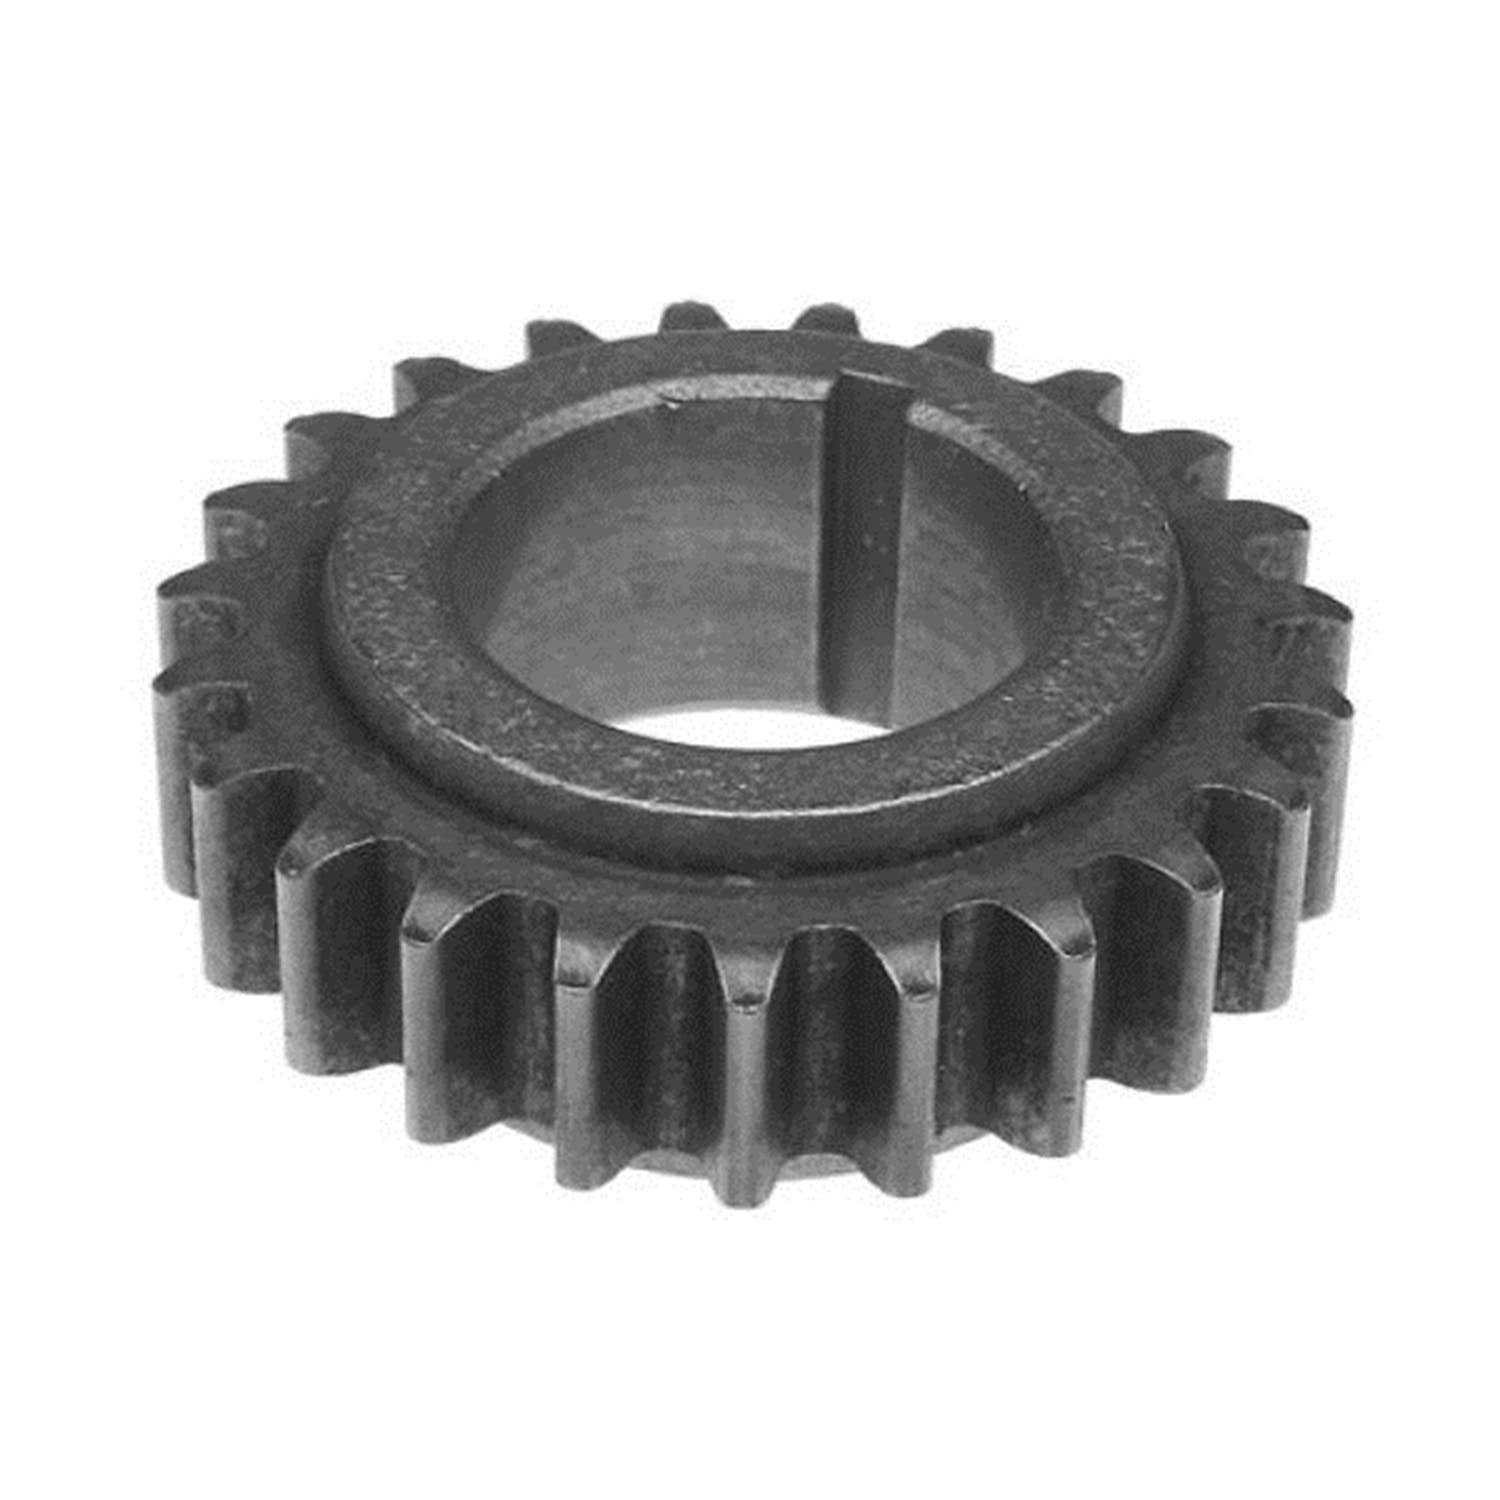 Engine Timing Camshaft Sprocket OMIX fits 05-06 Jeep Grand Cherokee 4.7L-V8